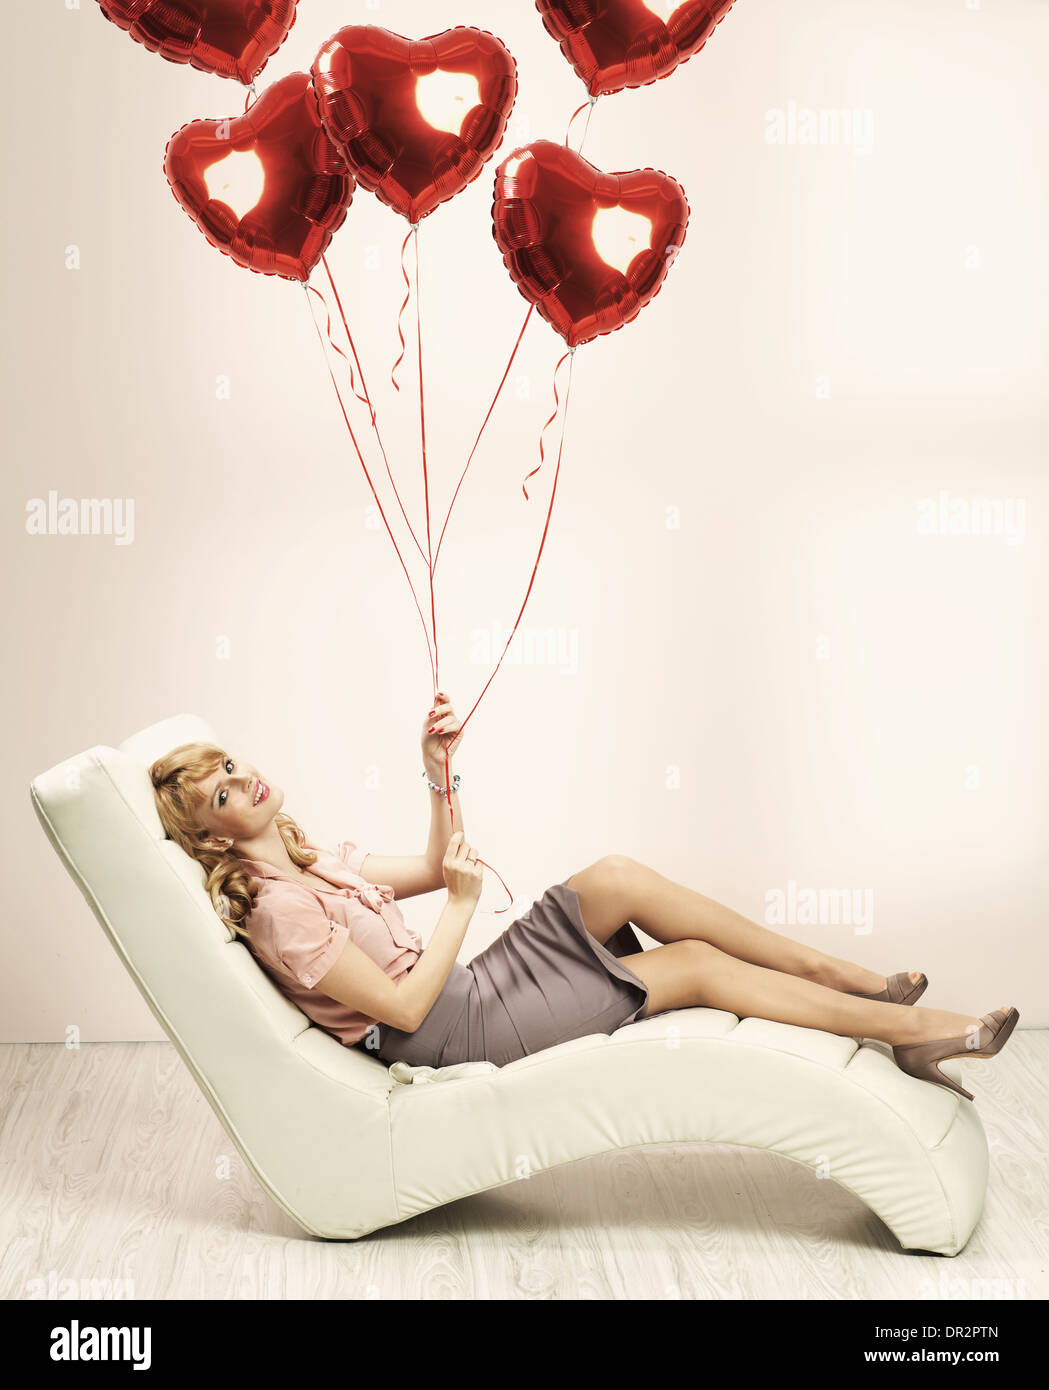 Alluring blonde woman preparing for valentine's day - Stock Image